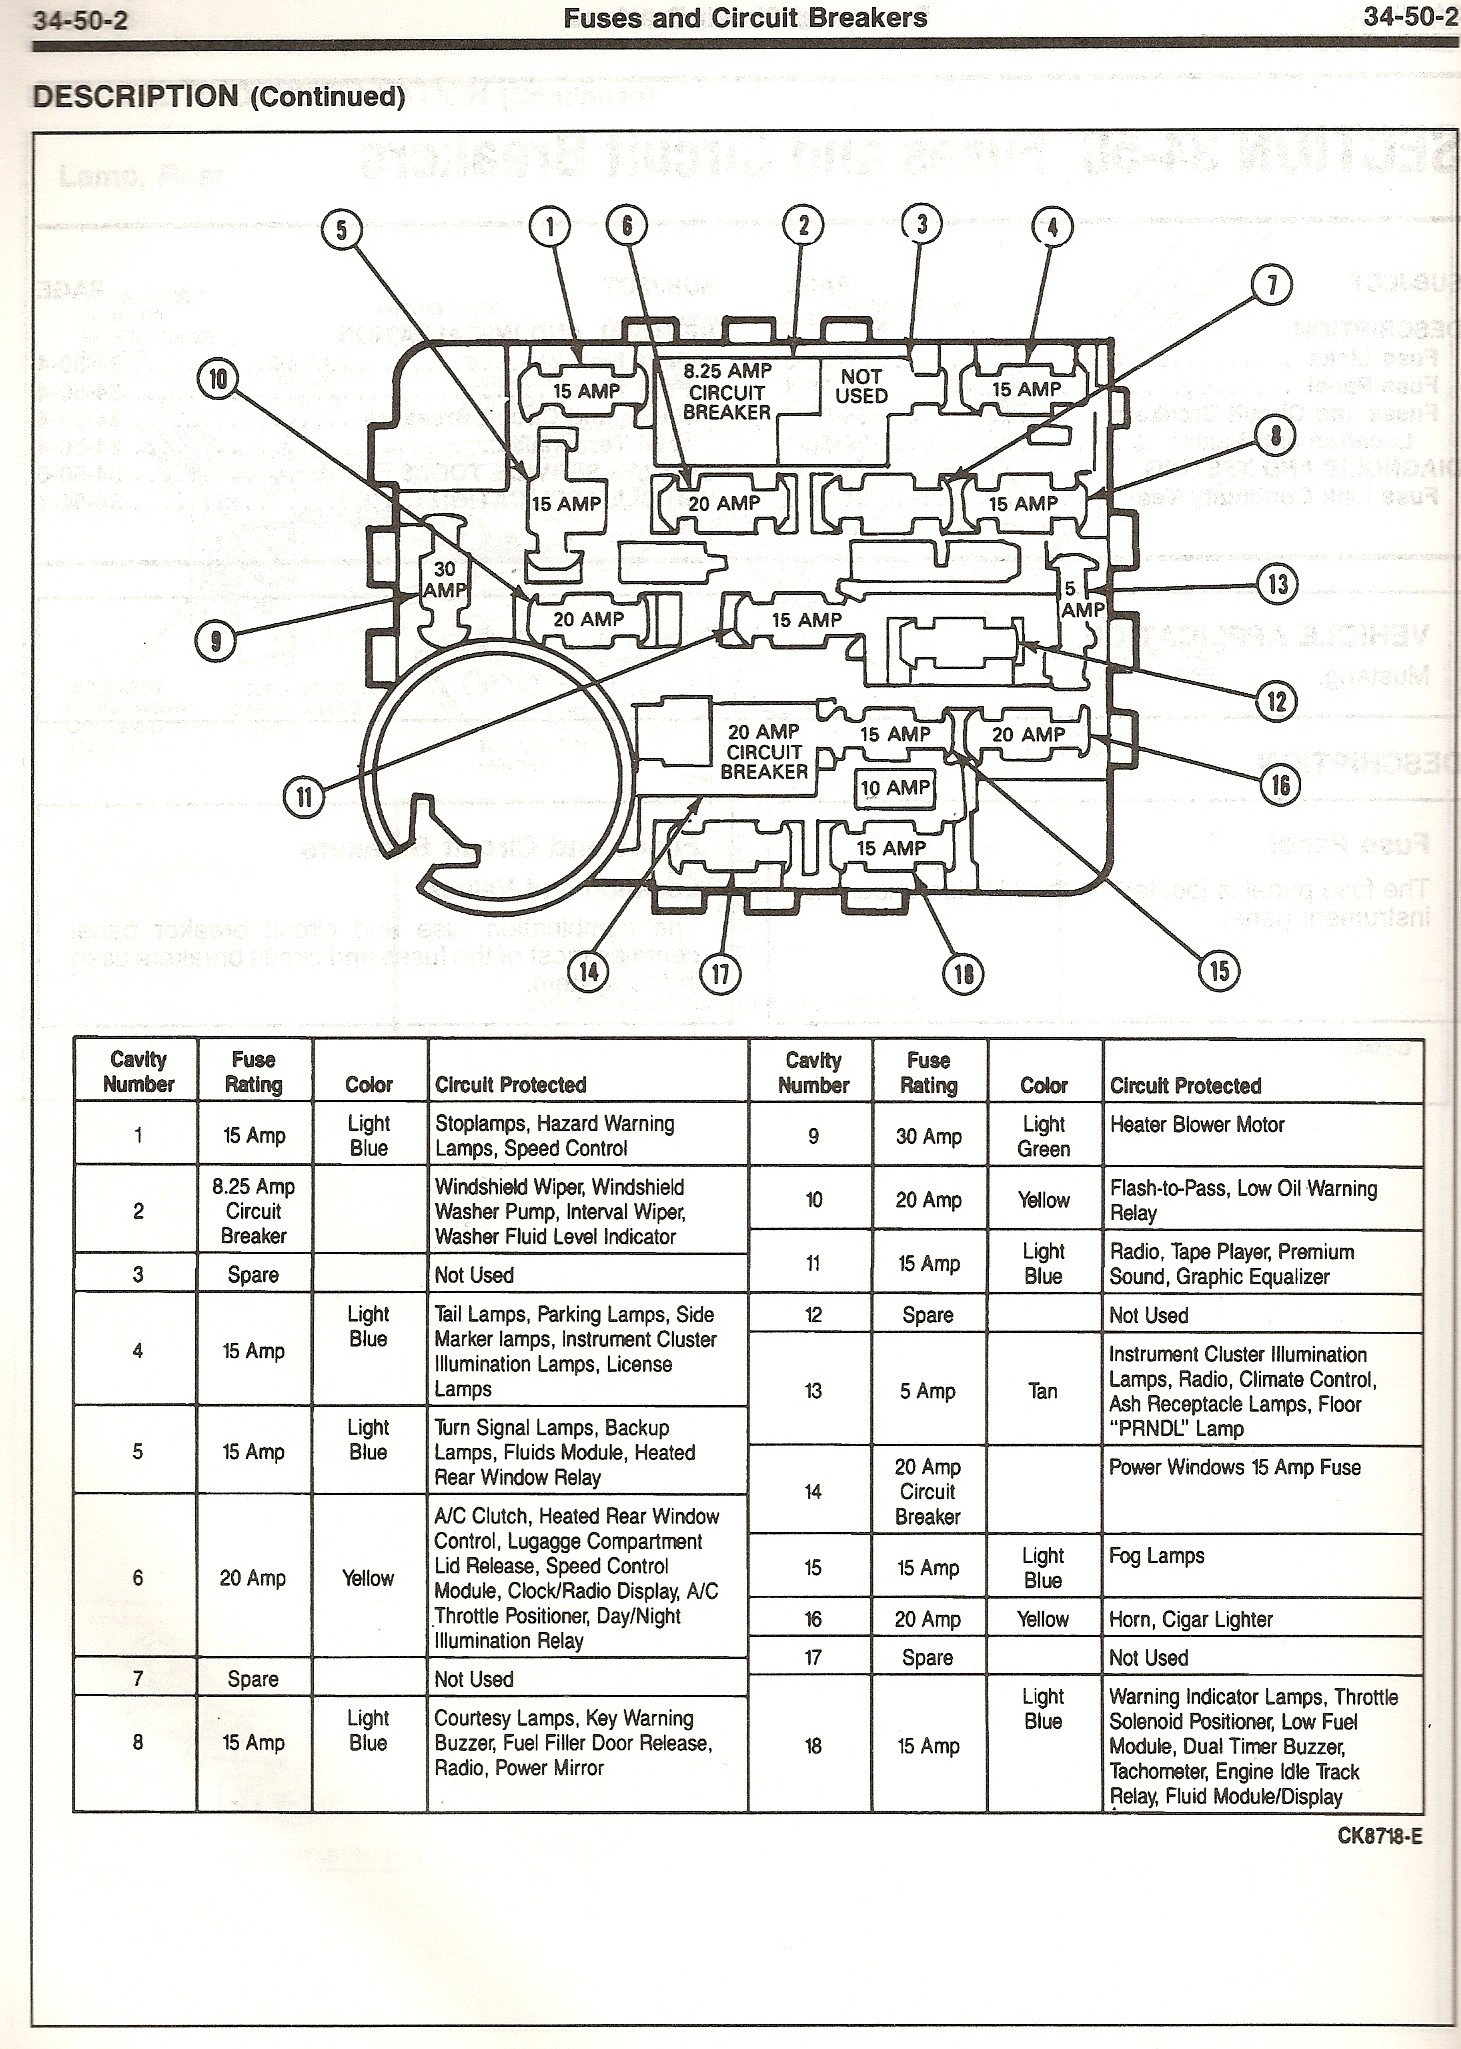 02 ls fuse diagram